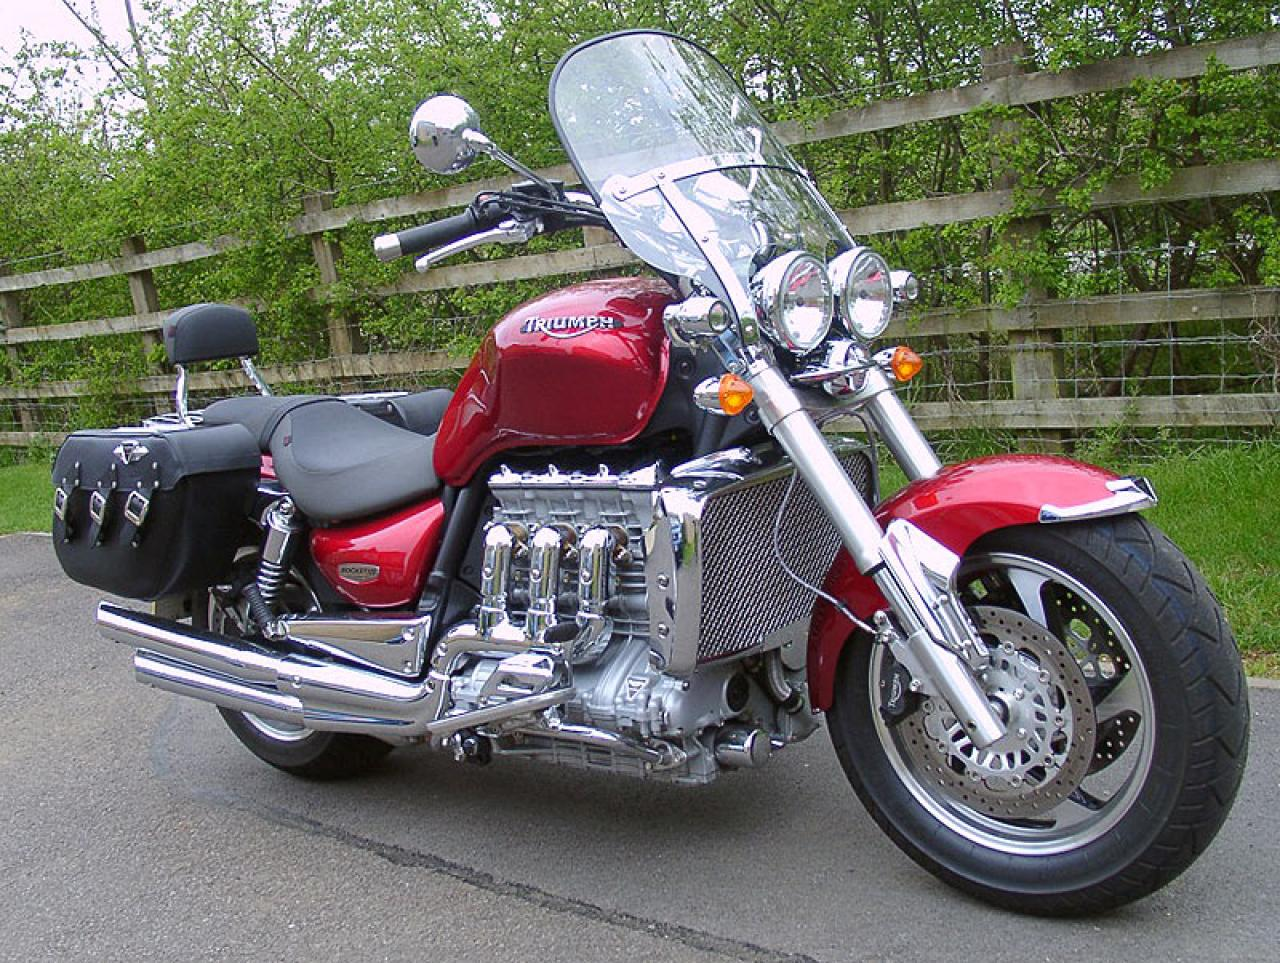 2005 triumph rocket iii moto zombdrive com. Black Bedroom Furniture Sets. Home Design Ideas